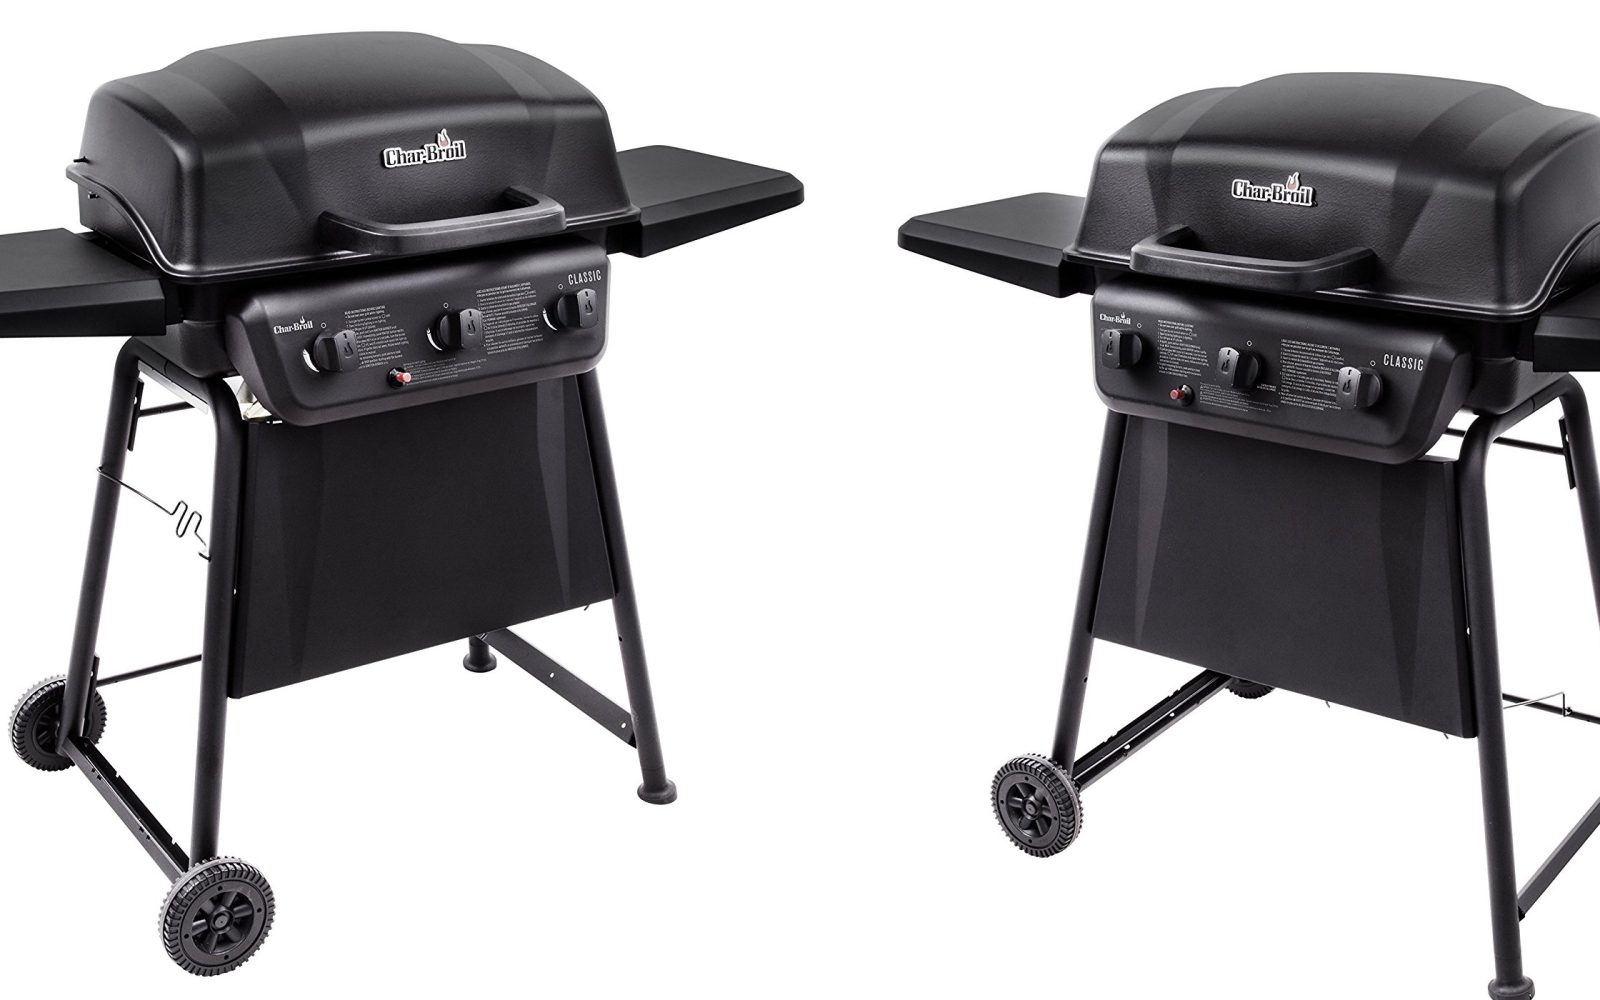 Char Broil Classic 3 Burner Gas Grill For Just 125 Shipped 9to5toys